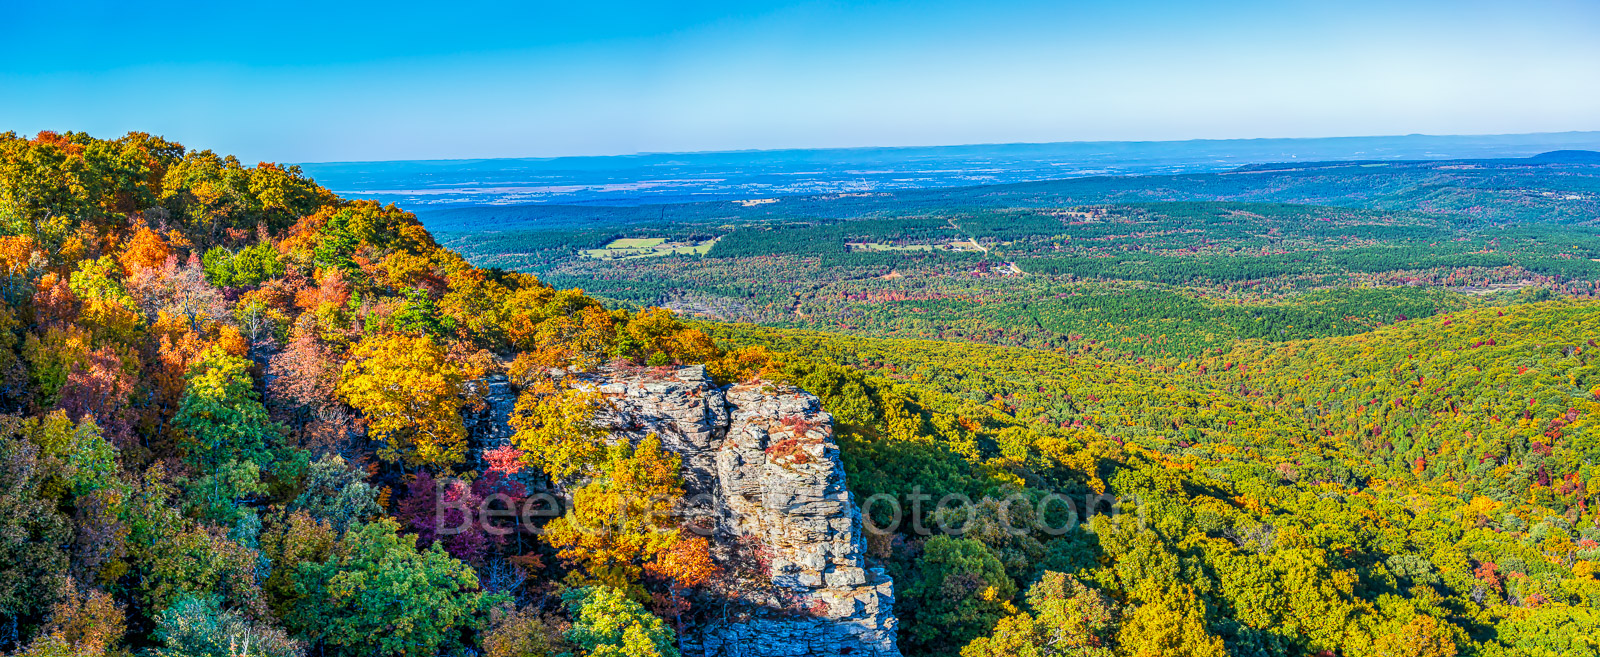 scenic, national forest, Ouachita, wilderness, fall, scenery, valley, limestone, arkansas, southern us, trees, maples, cedars, pines, hickory, distant views, aerial, pano, panorama, panoramic, fall sc, photo